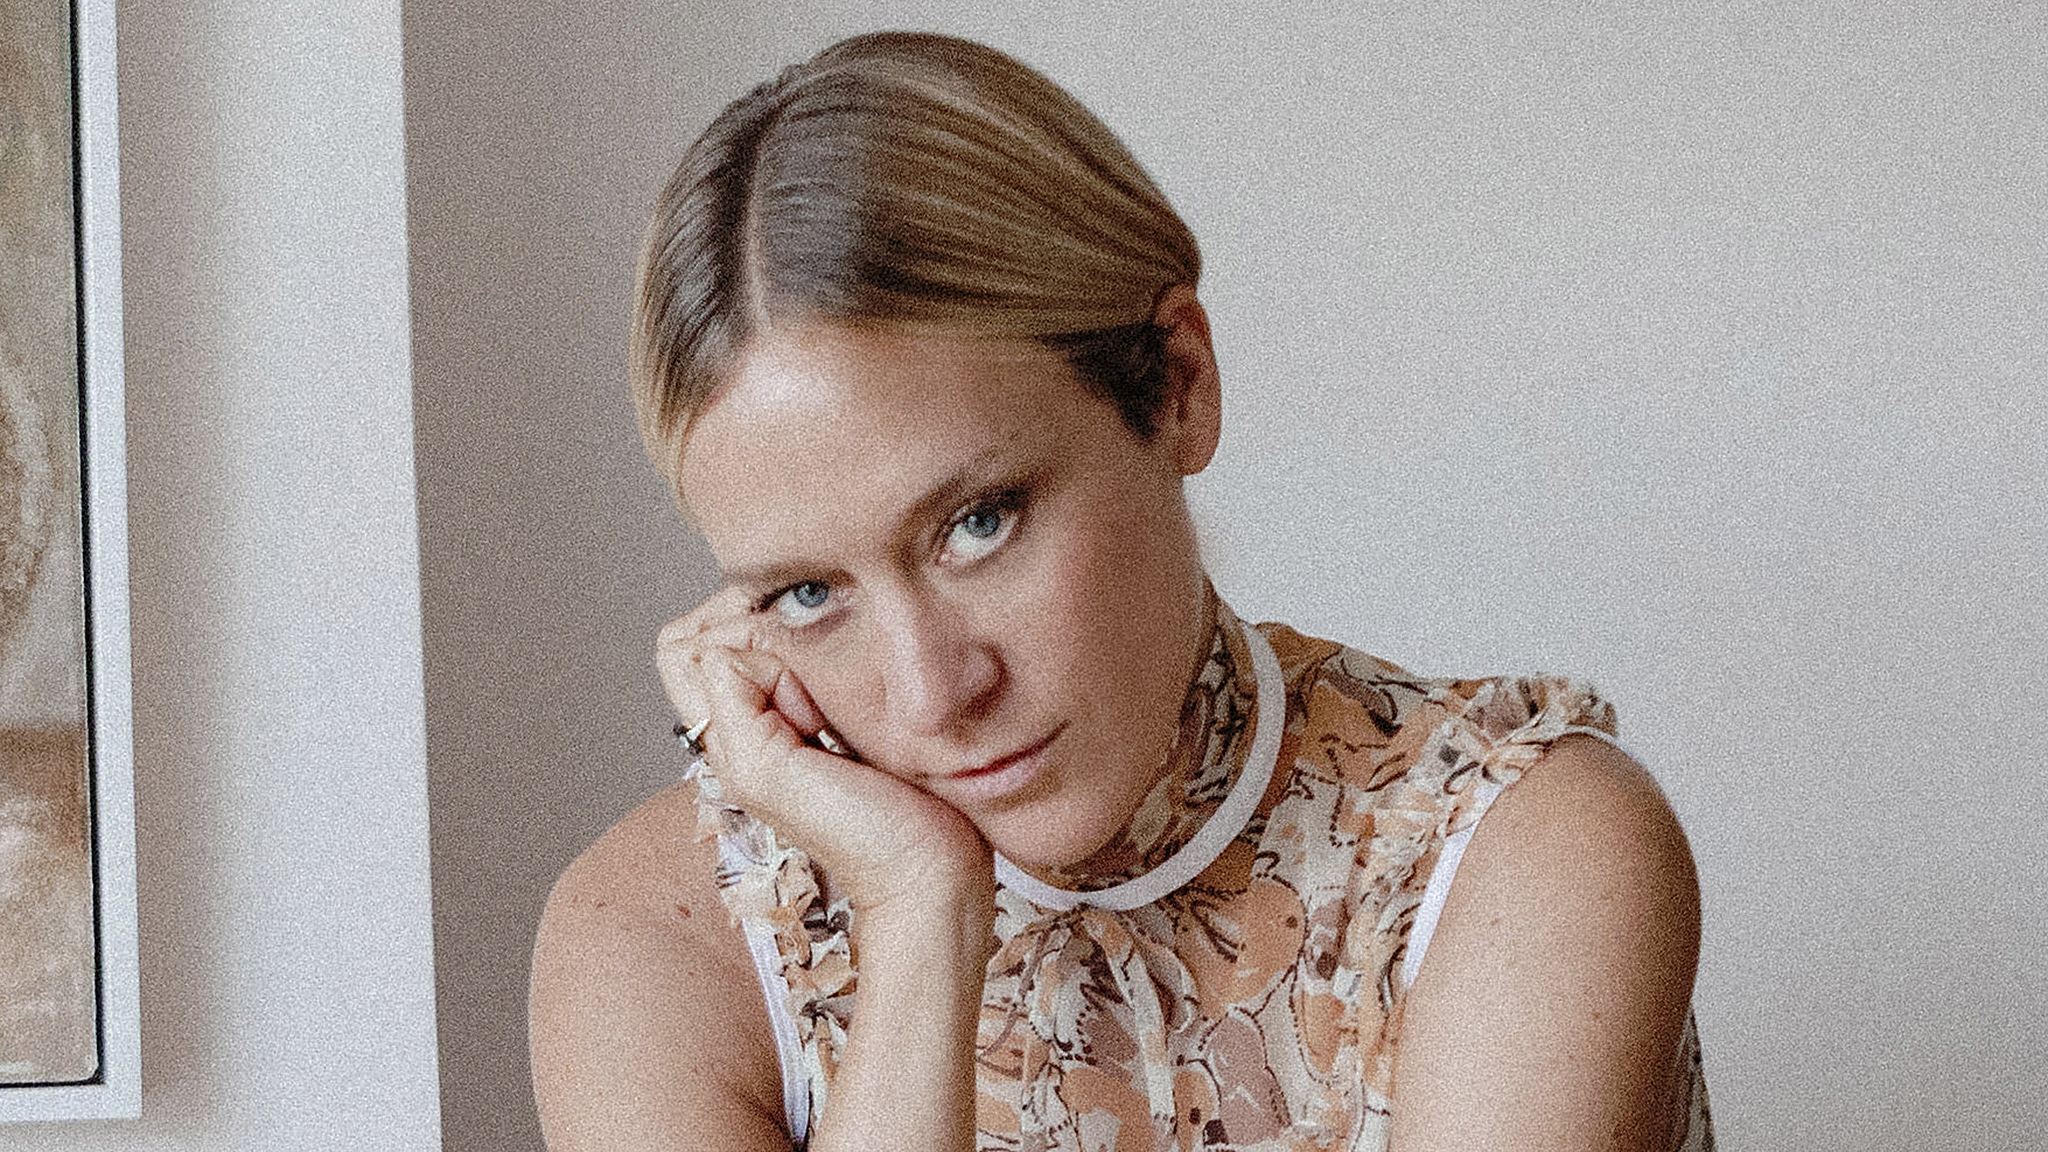 Film, fashion and fragrance; Chloë Sevigny creates her first scent